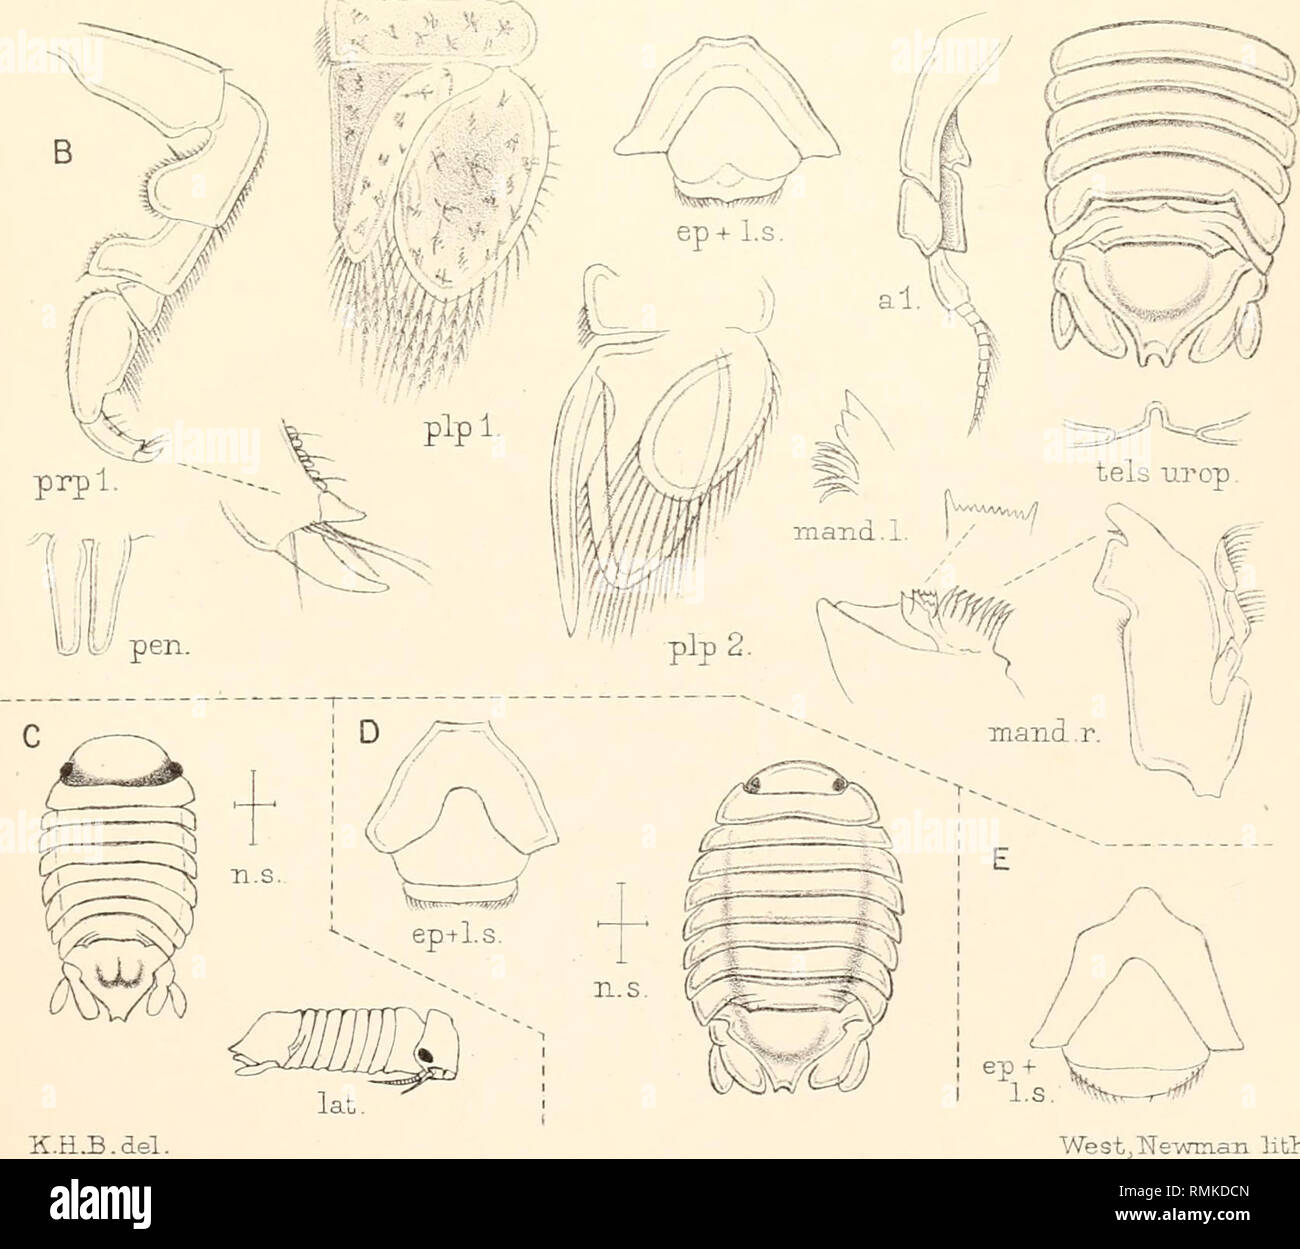 . Annals of the South African Museum. Annale van die Suid-Afrikaanse Museum. Natural history. al. pip 2 plpl. '•. lat. K.H..B.del. lith.. A.DYNAMENELLA SCABRIGULA (Heller). B. DYNAMENELLA KRAUSSI n.sp. C.DYNAMENELLA MACROCEPHALA (Jfrauss). D. BYNAMENELLA OVALIS n.sp. E. DYNAME NEiLA AU S TRALIS Richardson.. Please note that these images are extracted from scanned page images that may have been digitally enhanced for readability - coloration and appearance of these illustrations may not perfectly resemble the original work.. South African Museum; South African Museum. Annale van die Suid-Afrika - Stock Image